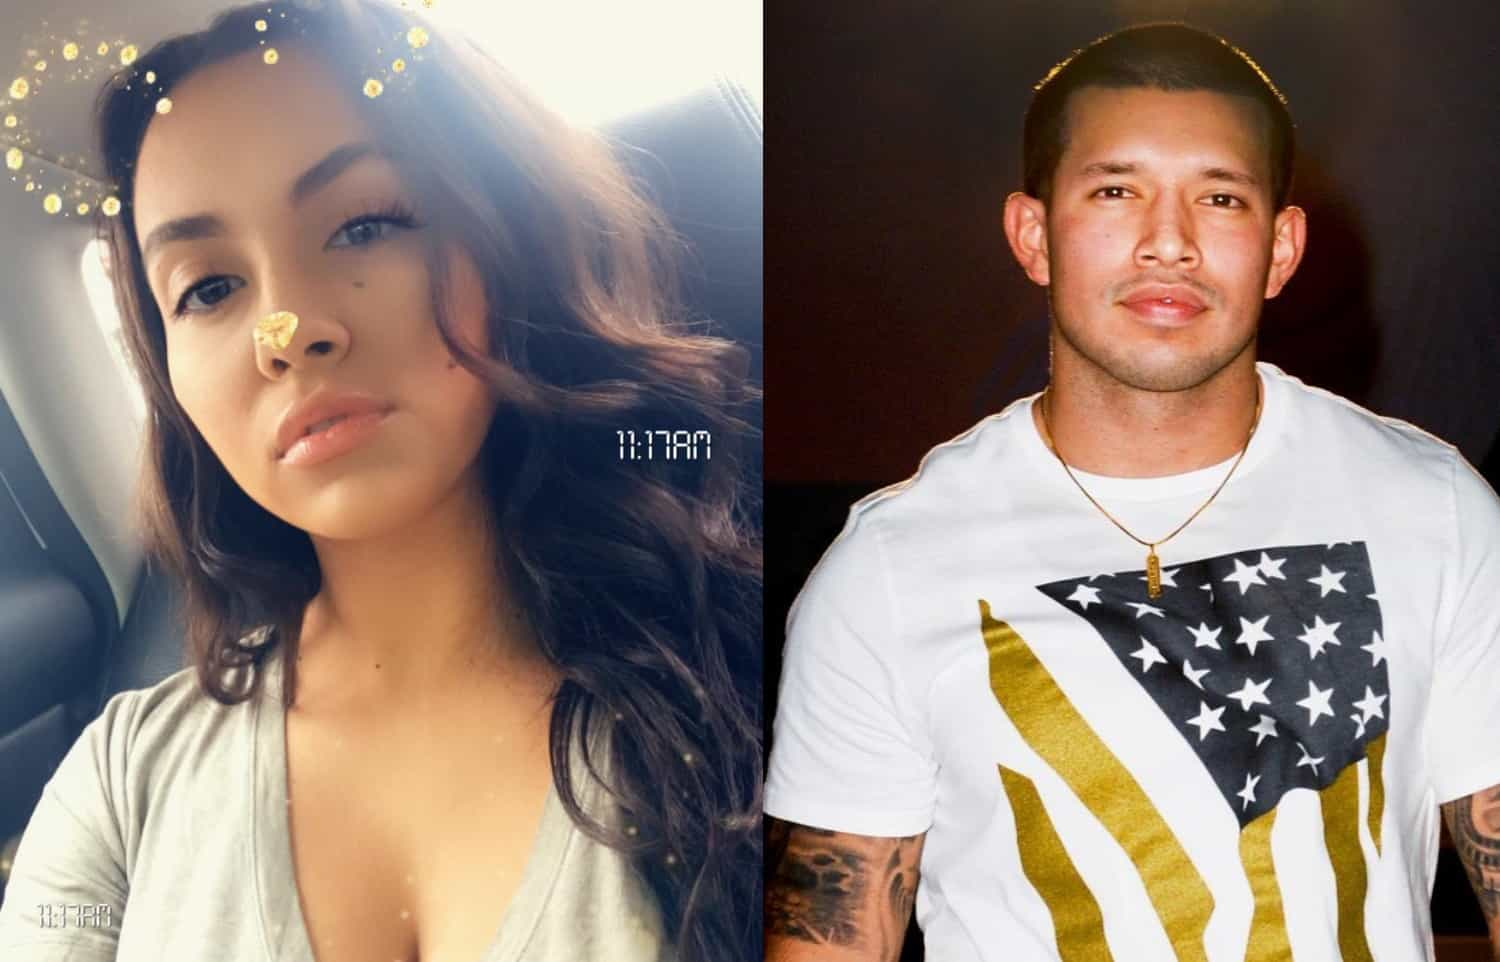 Teen Mom 2 Briana DeJesus vs Javi Marroquin